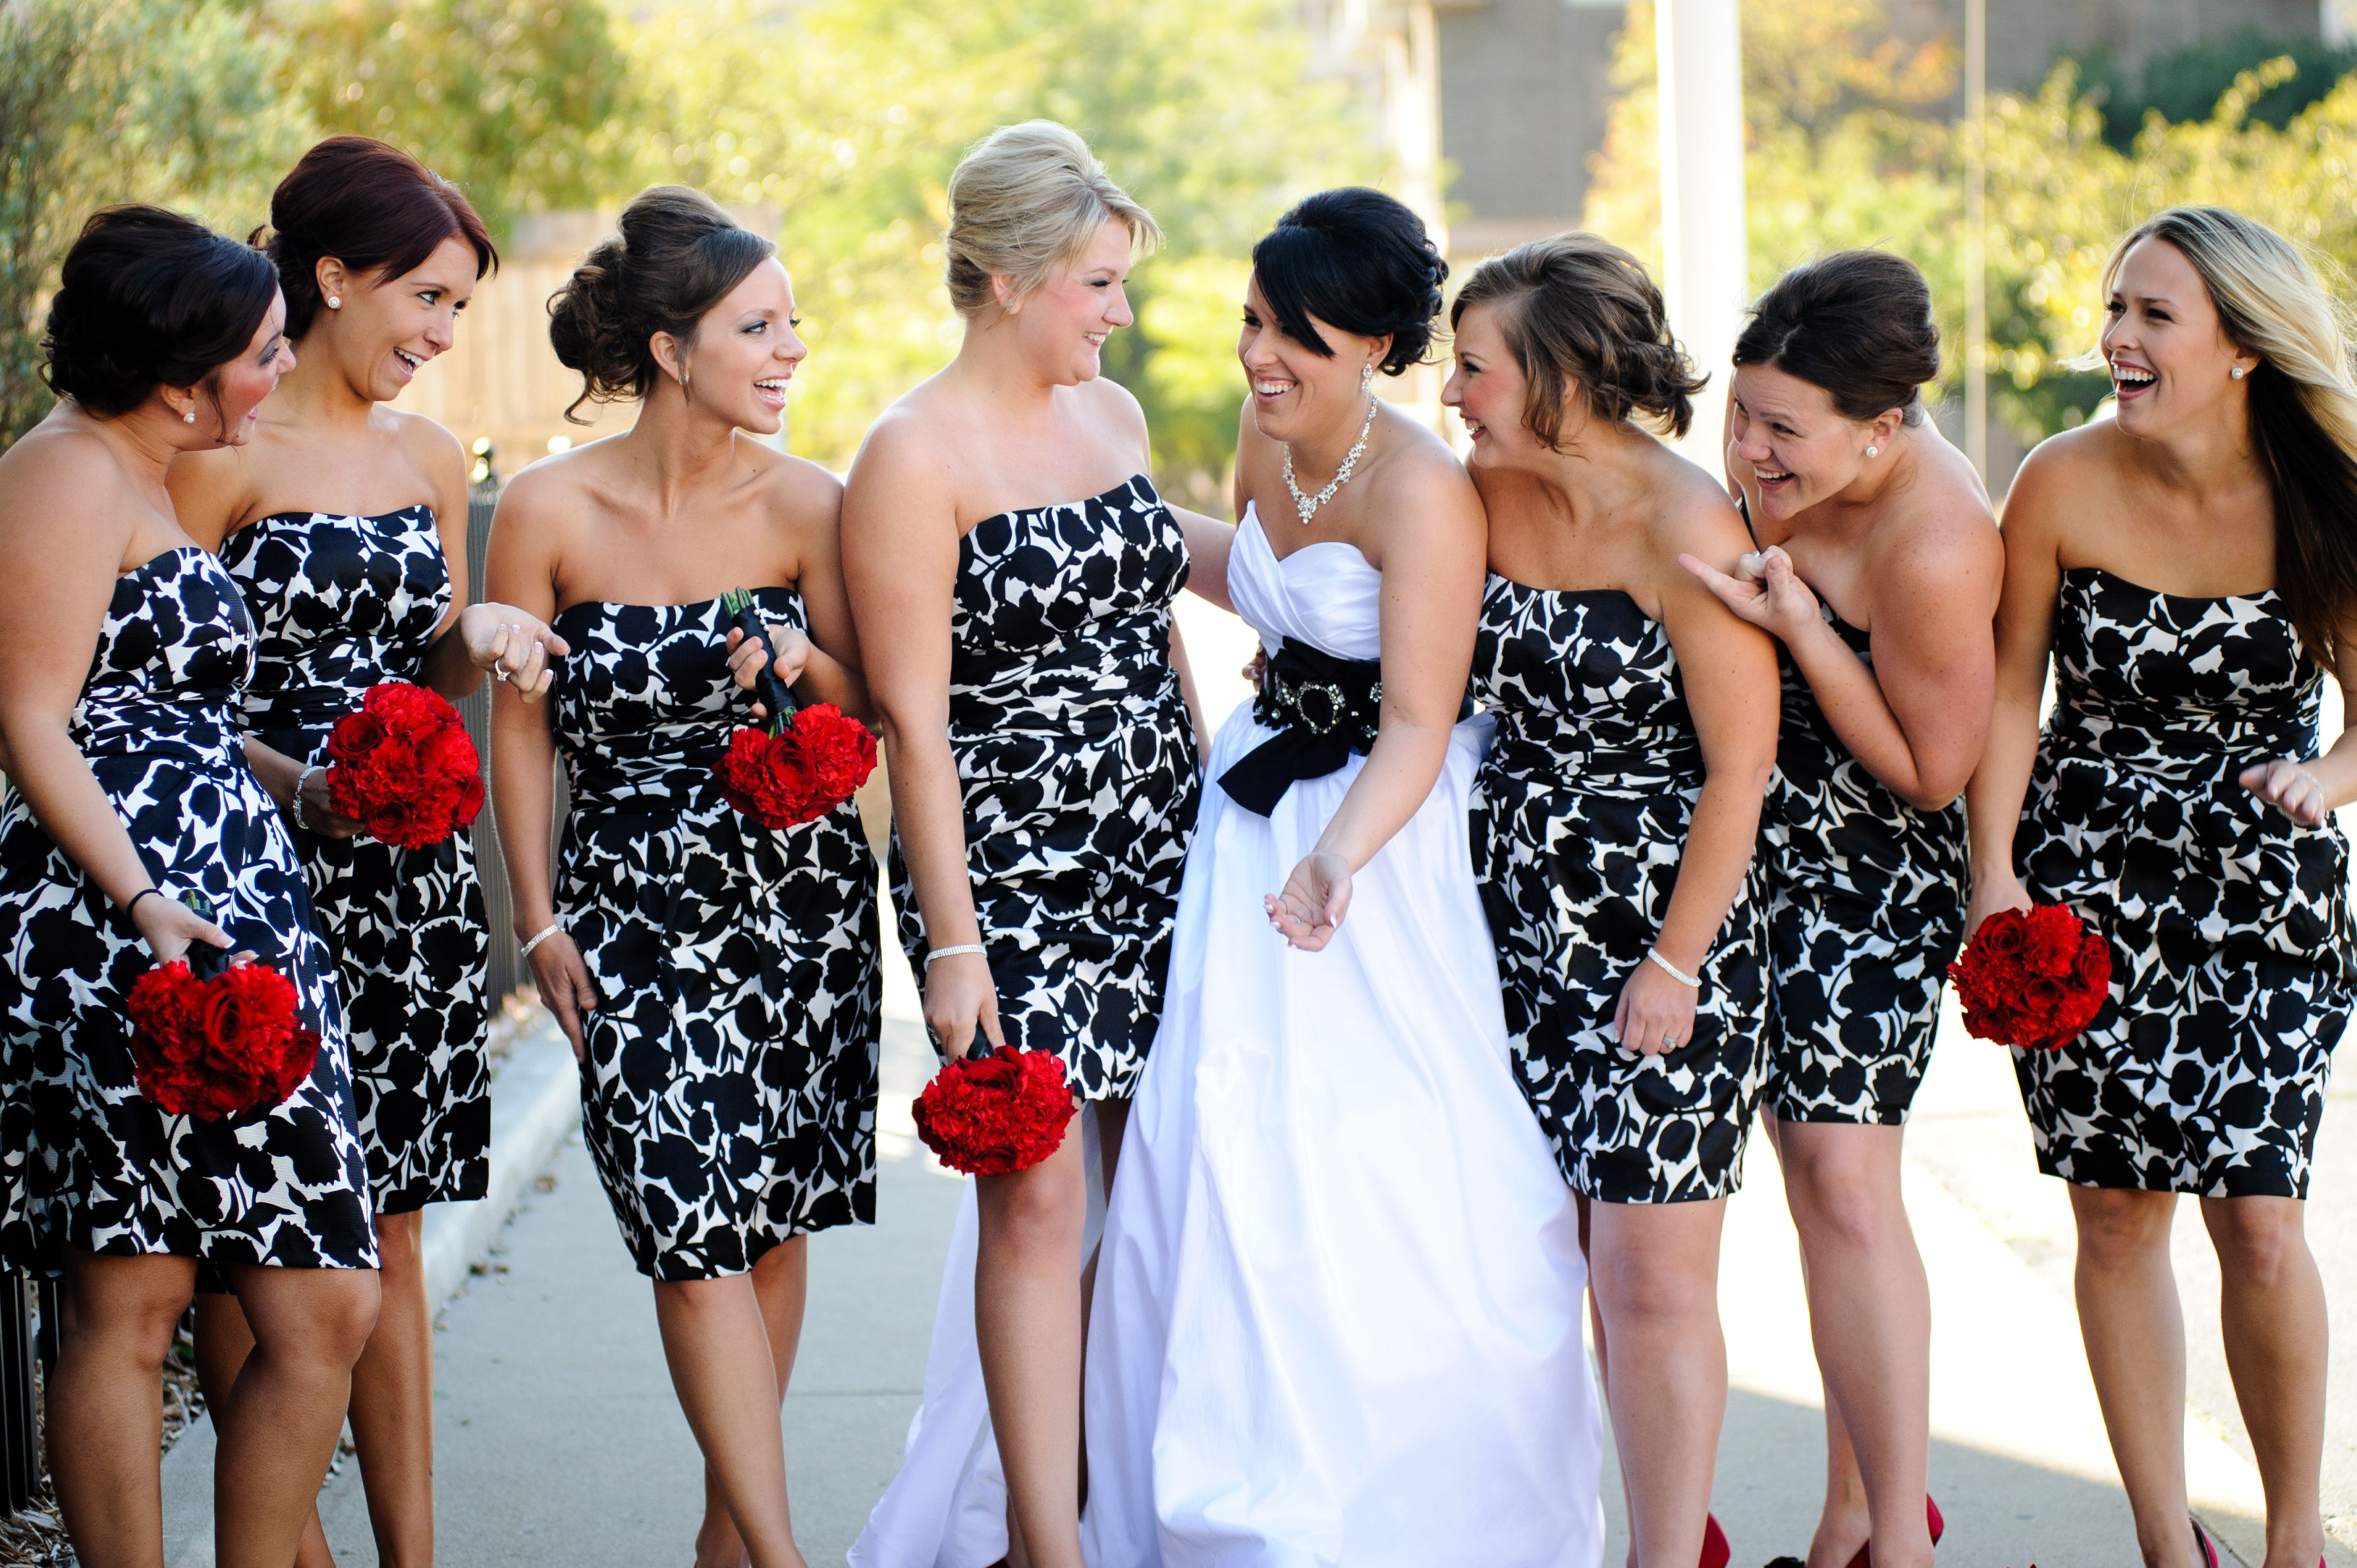 I love these dresses!!! I want black and white dresses with red ...